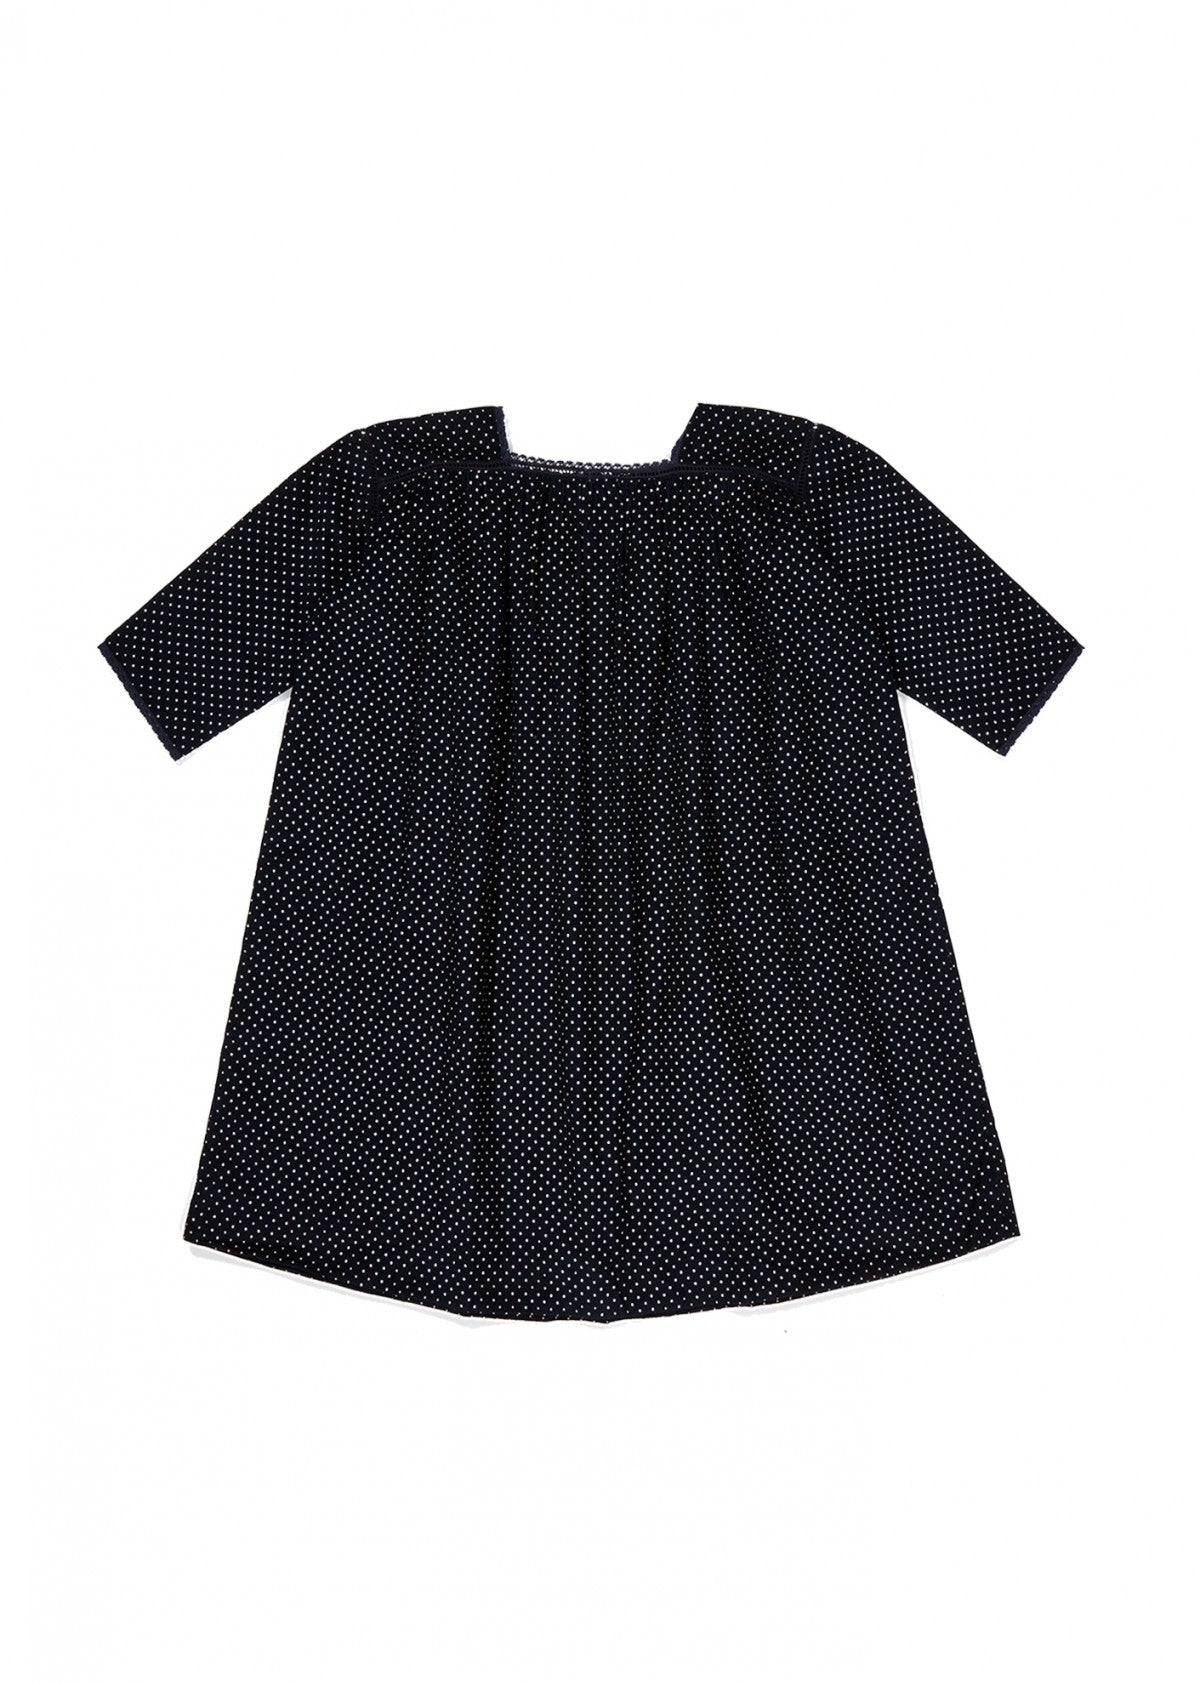 Caramel Pony Kid's Babycord Dress in Navy Dot | BIEN BIEN